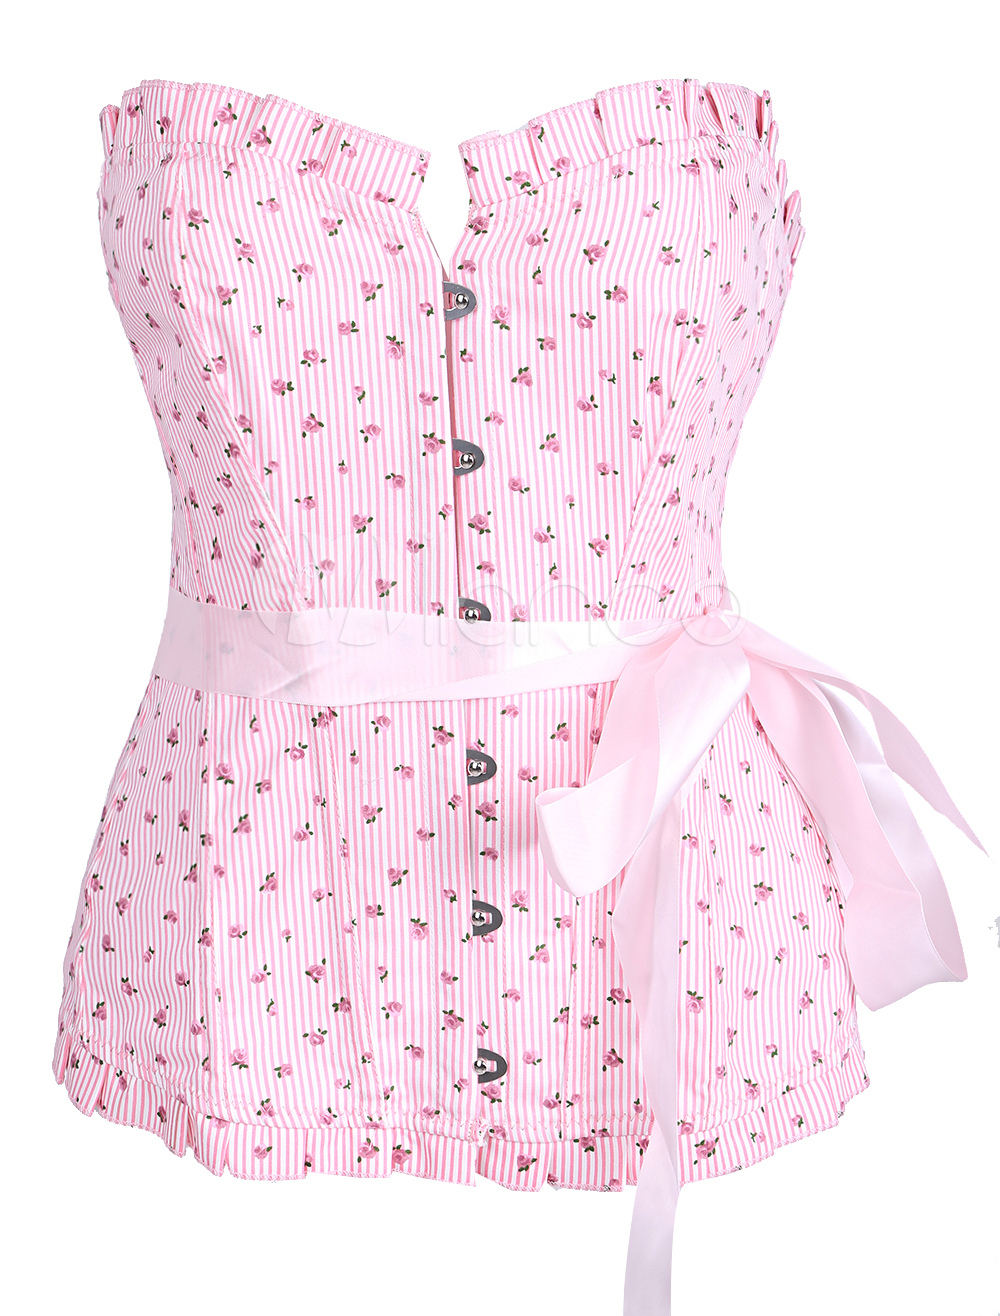 Sweet Pink Cotton Lace Up Women's Corsets